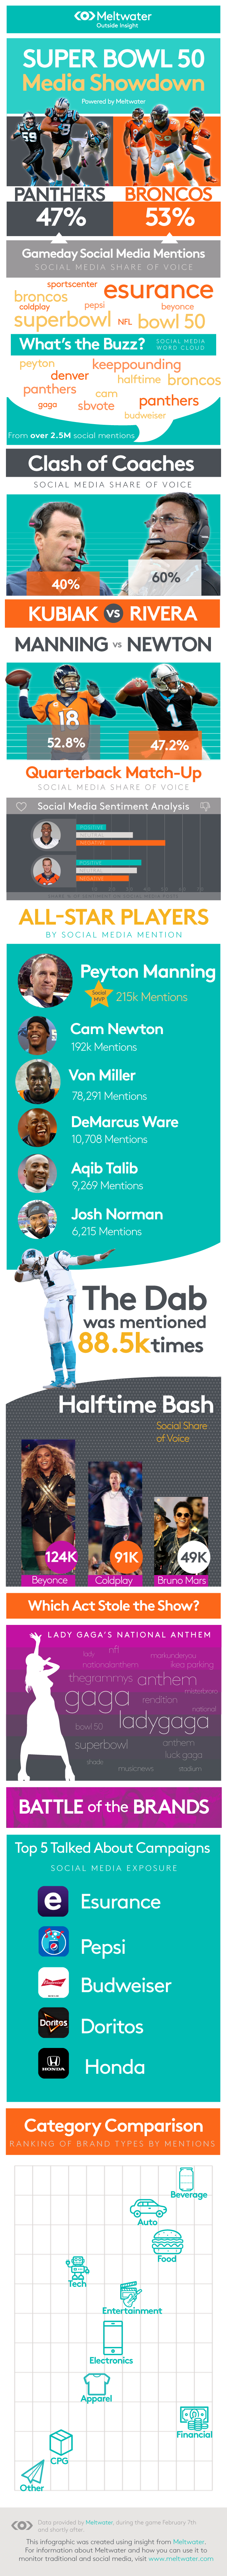 Meltwater-SB50-Infographic